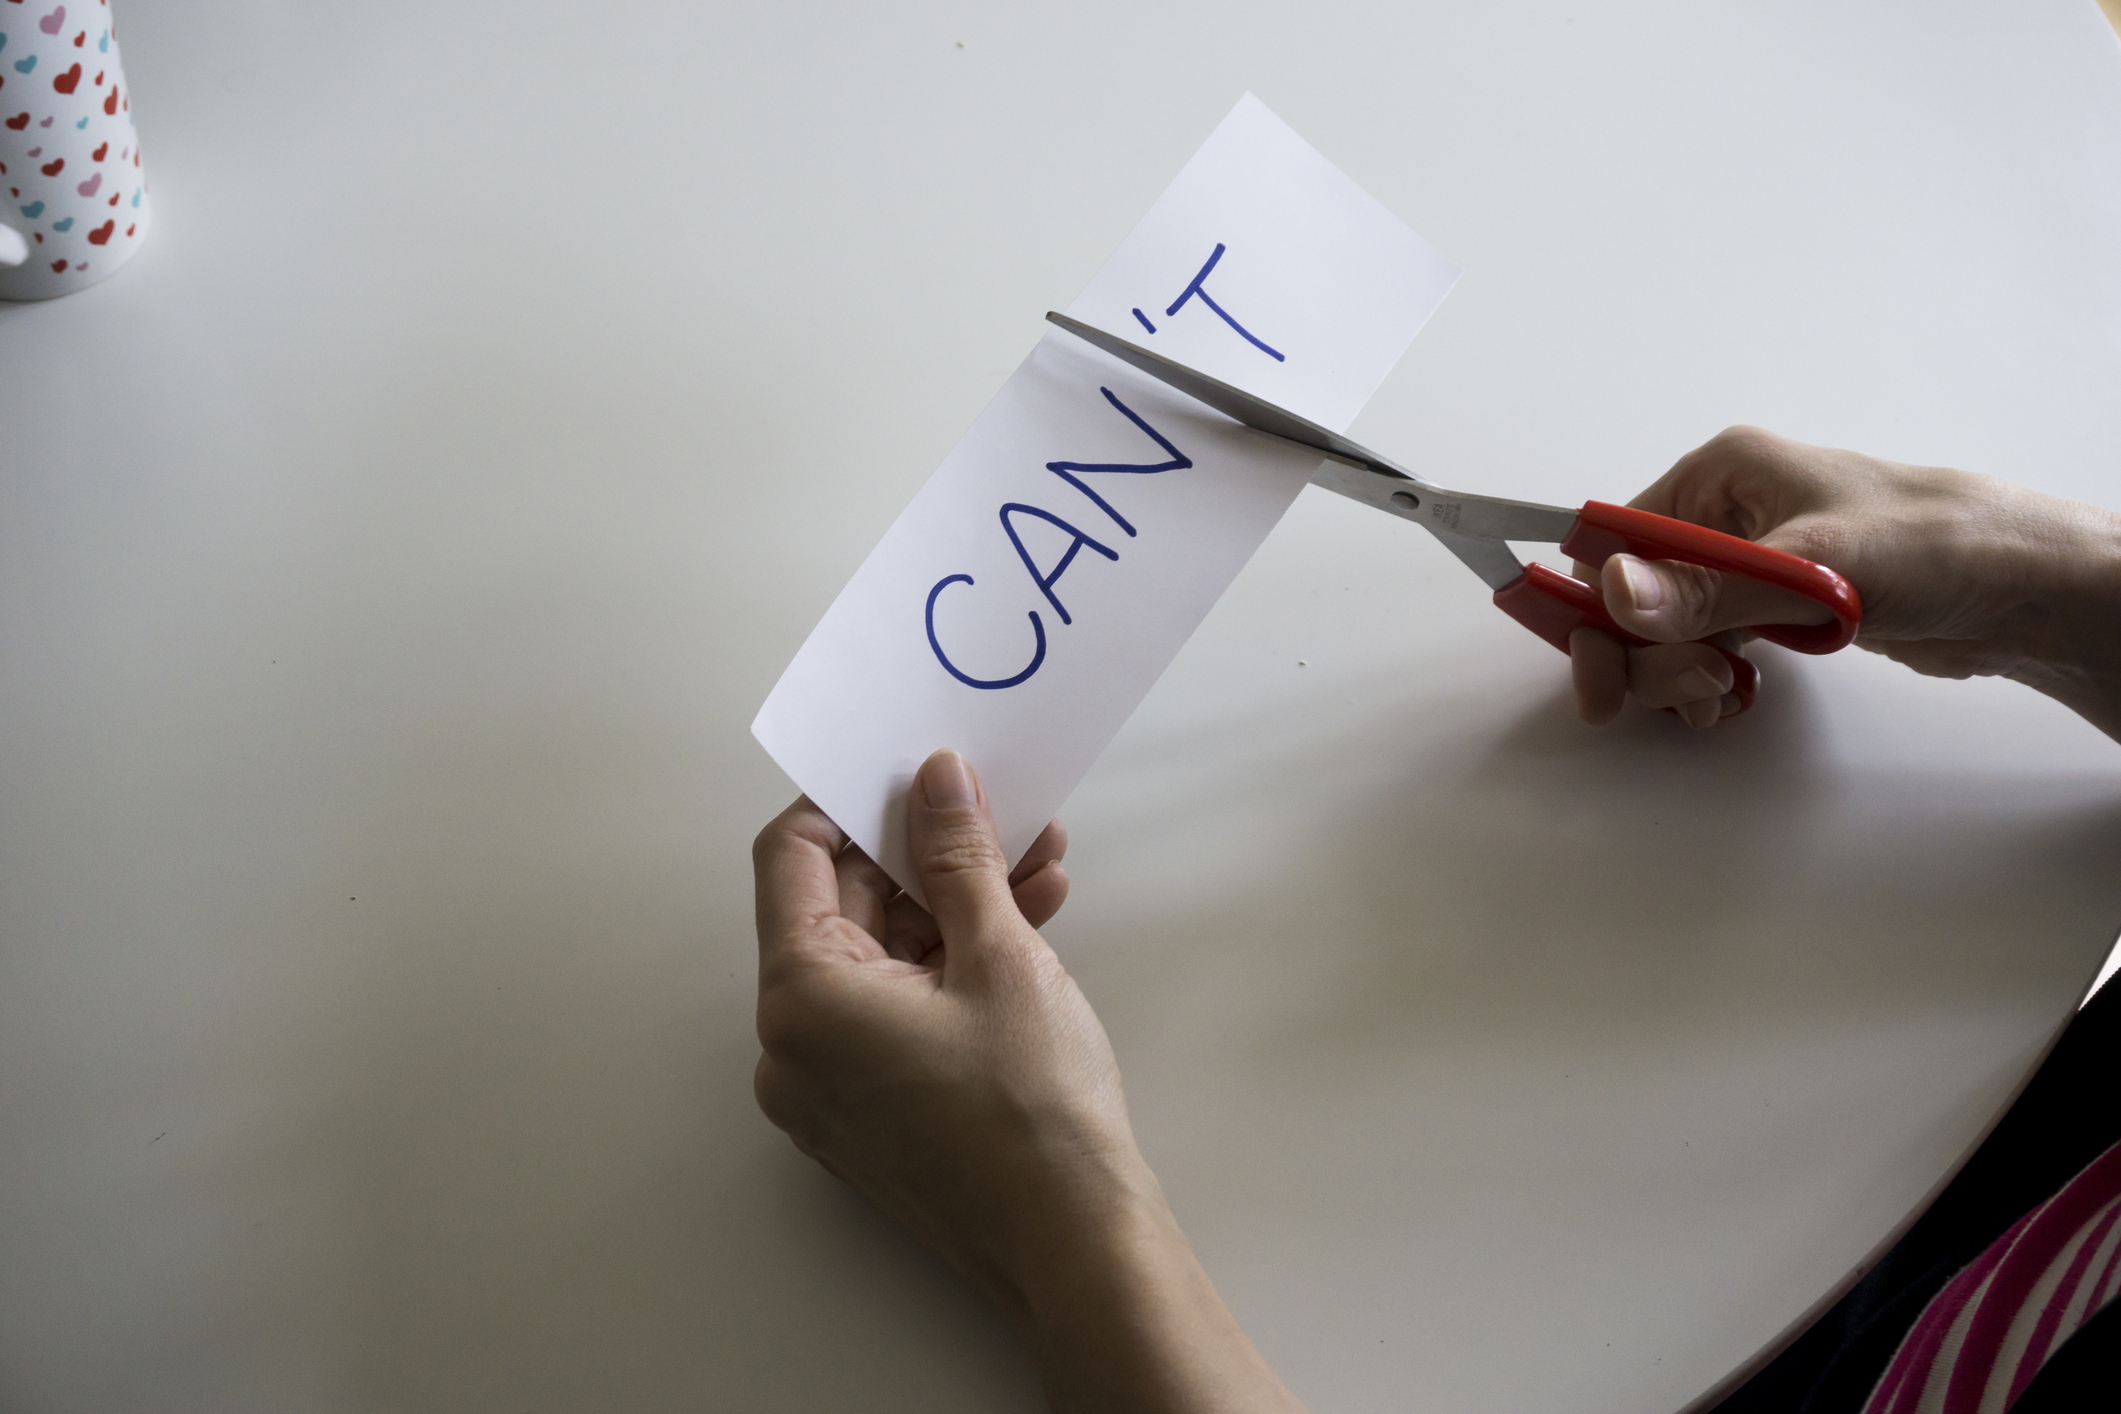 The word CAN'T, with the 'T cut off to spell CAN